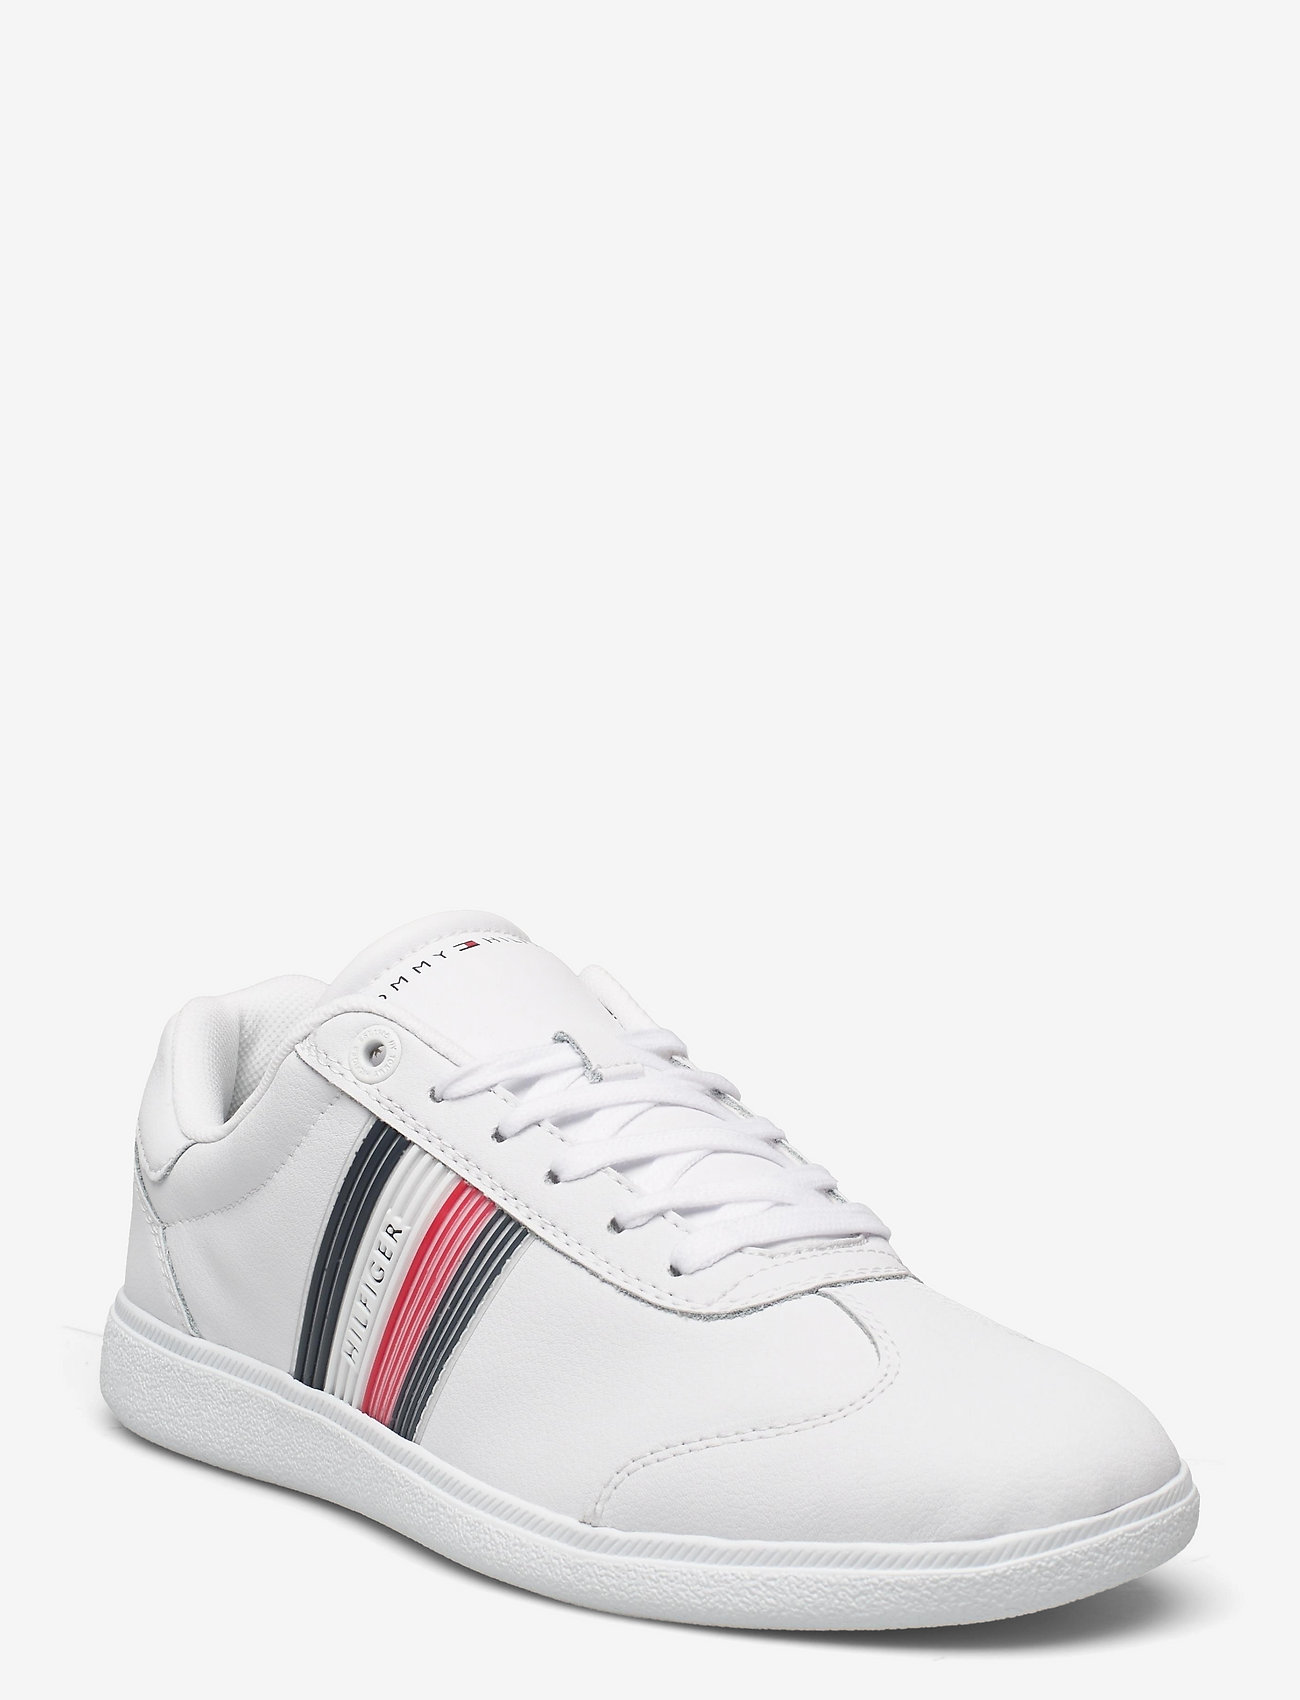 Tommy Hilfiger - CORE CORPORATE LEATHER CUPSOLE - low tops - white - 0